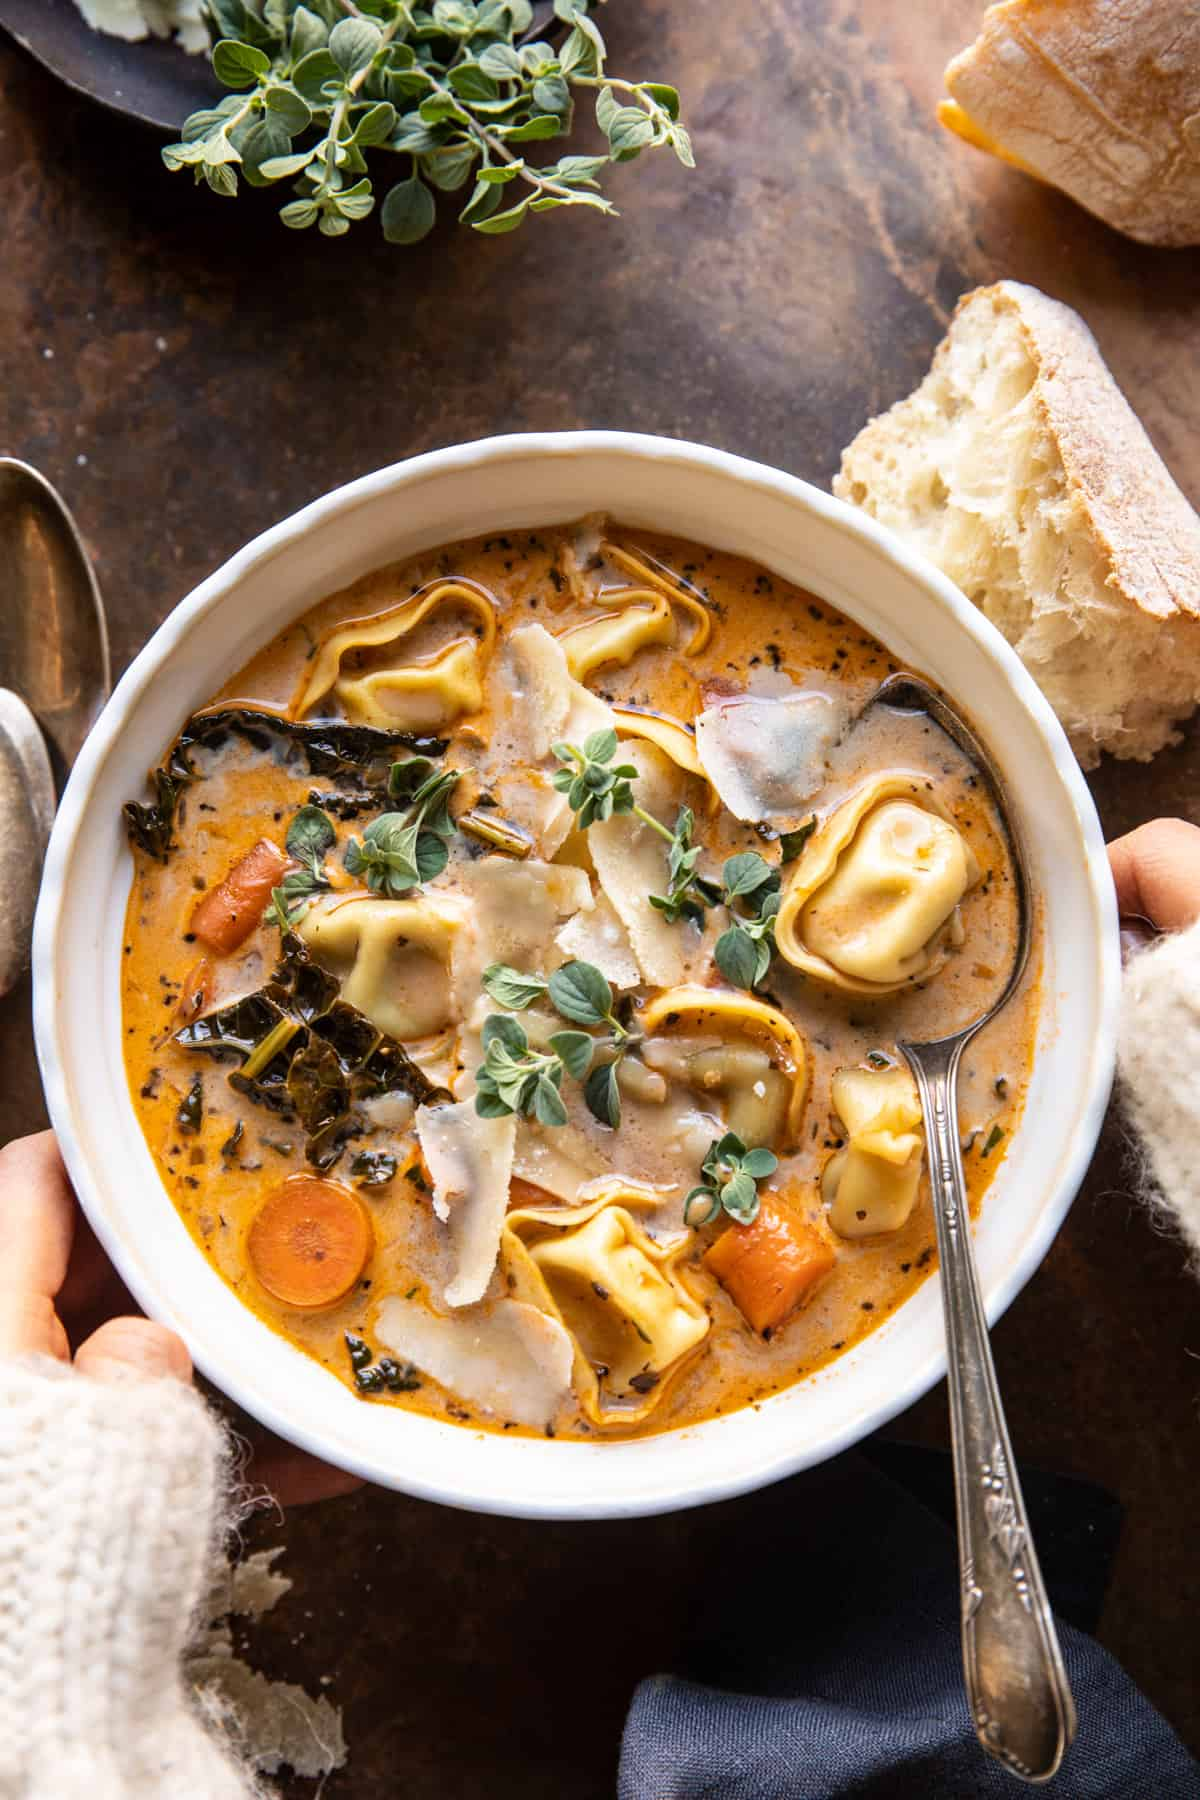 Healthier Slow Cooker Creamy Tortellini Vegetable Soup.